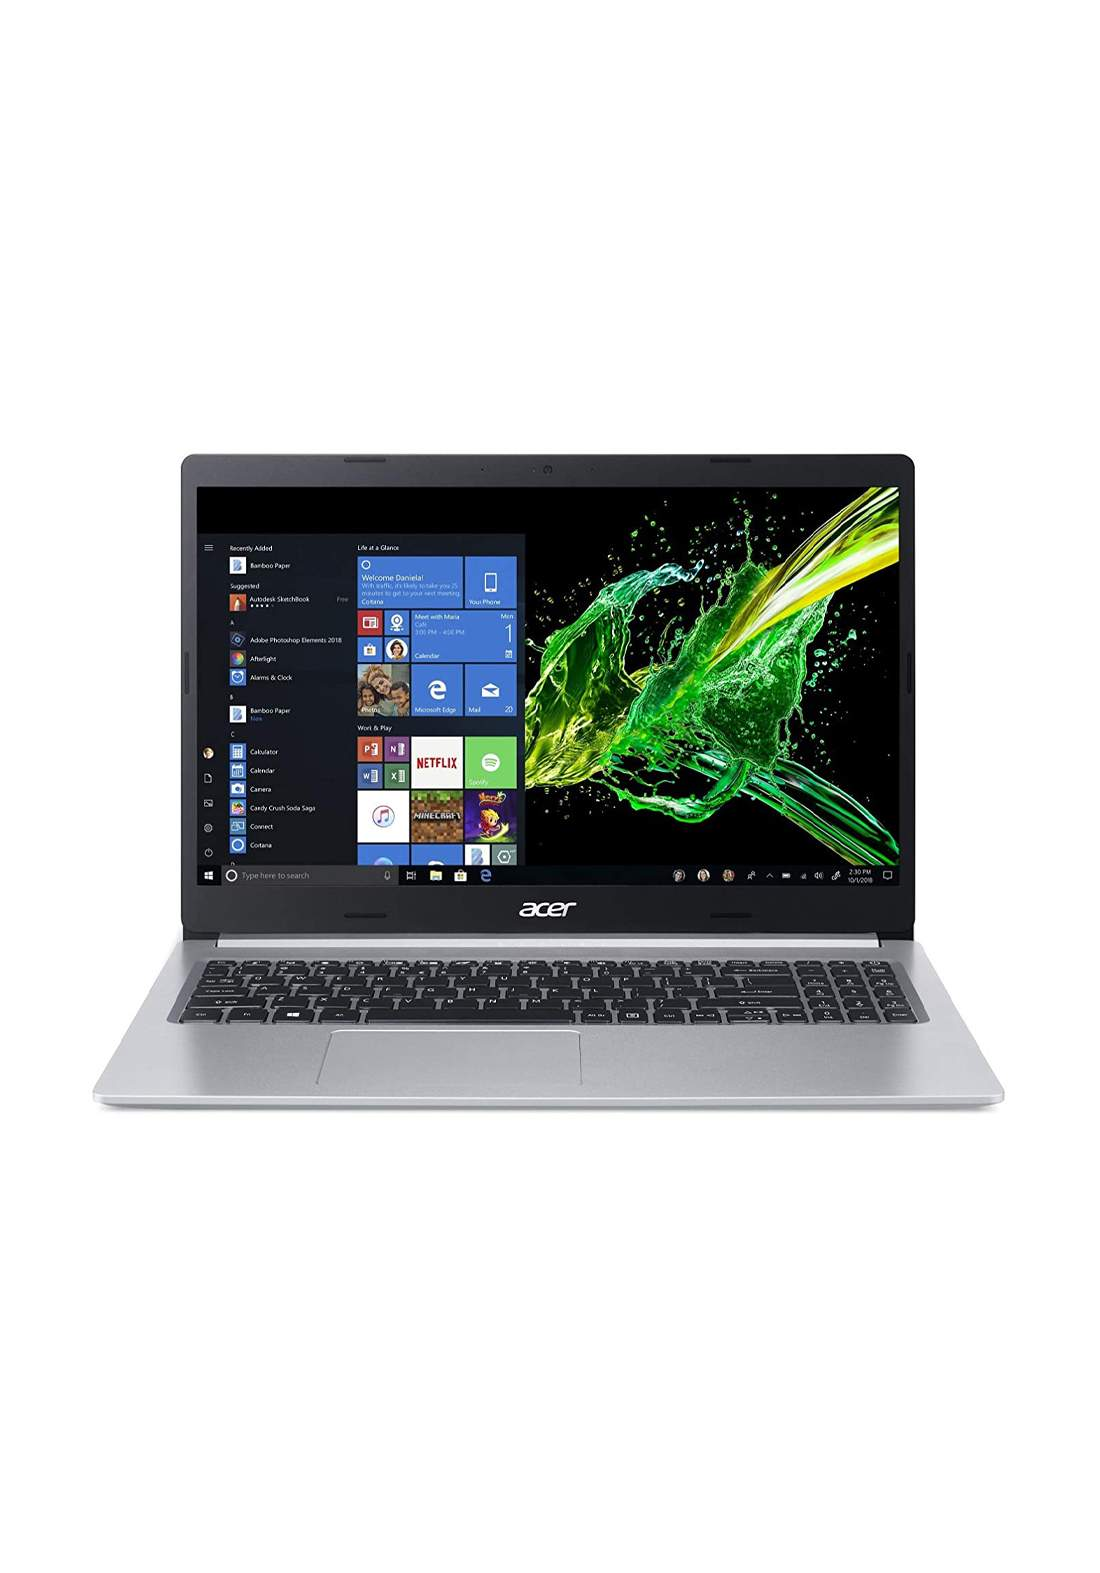 Acer Spin 314 Laptop - Core i5-1035G1 - 8 GB RAM - 256 GB SSD - Grey